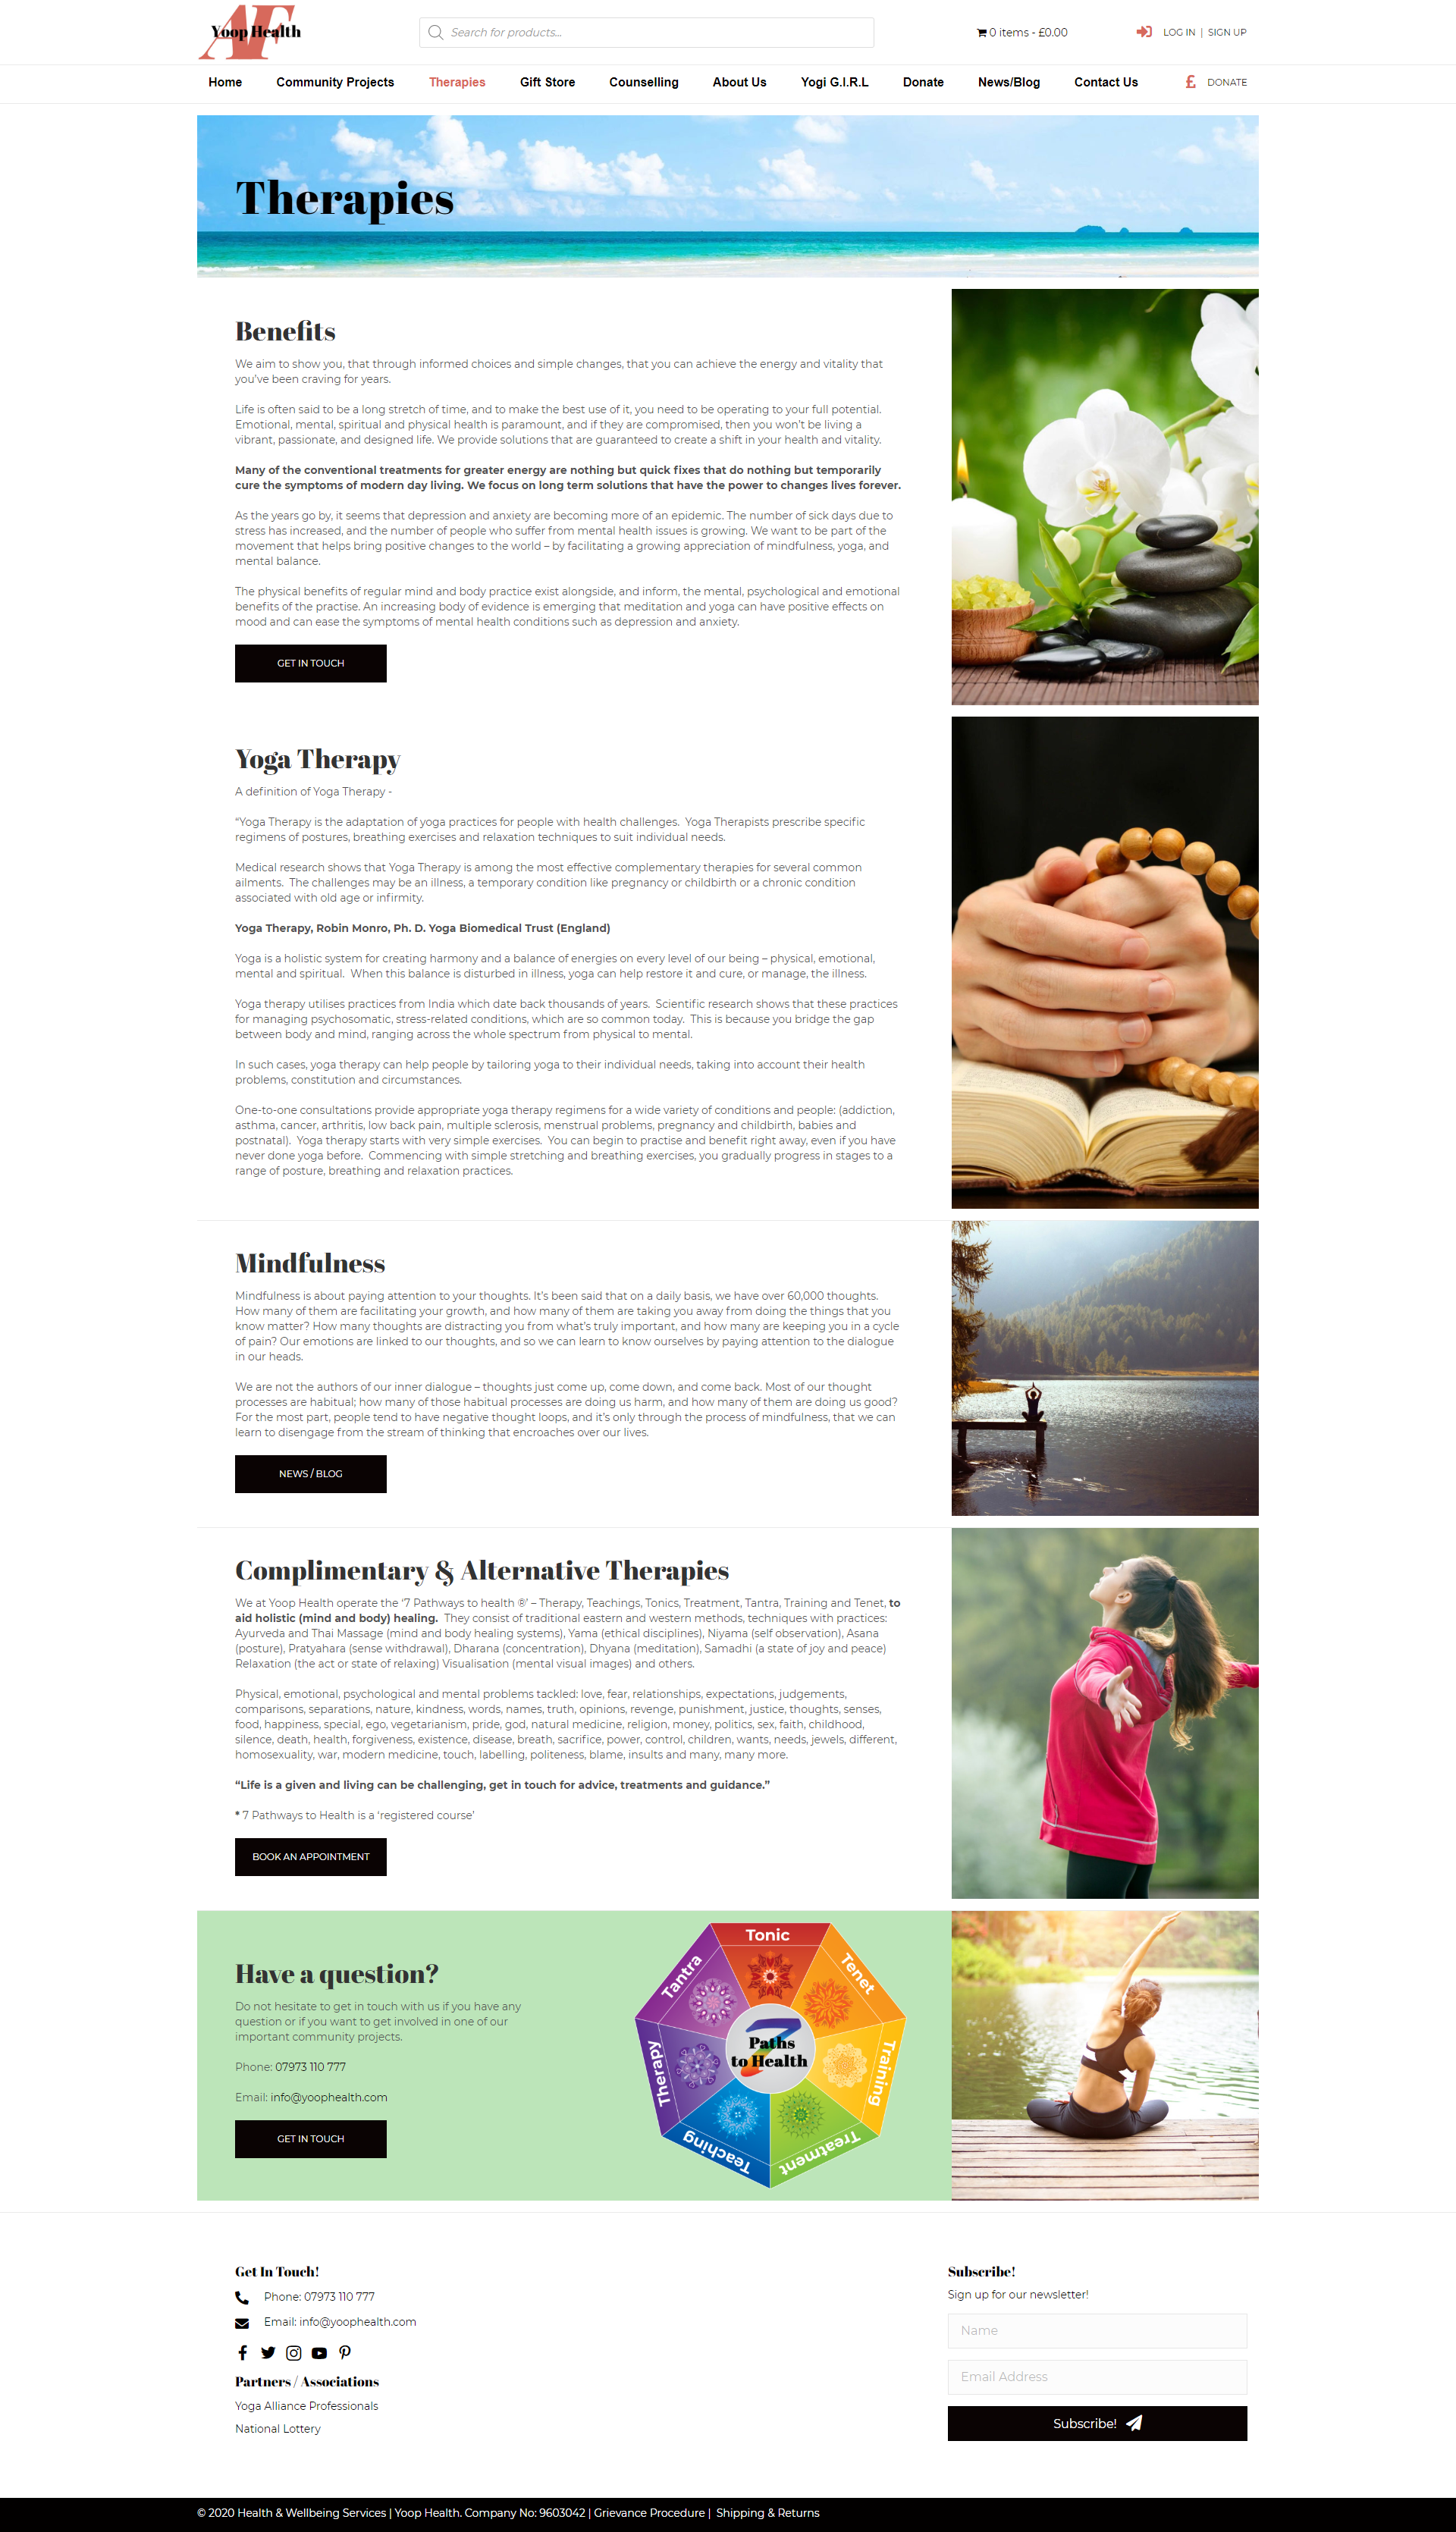 Yoop Health Therapies Page